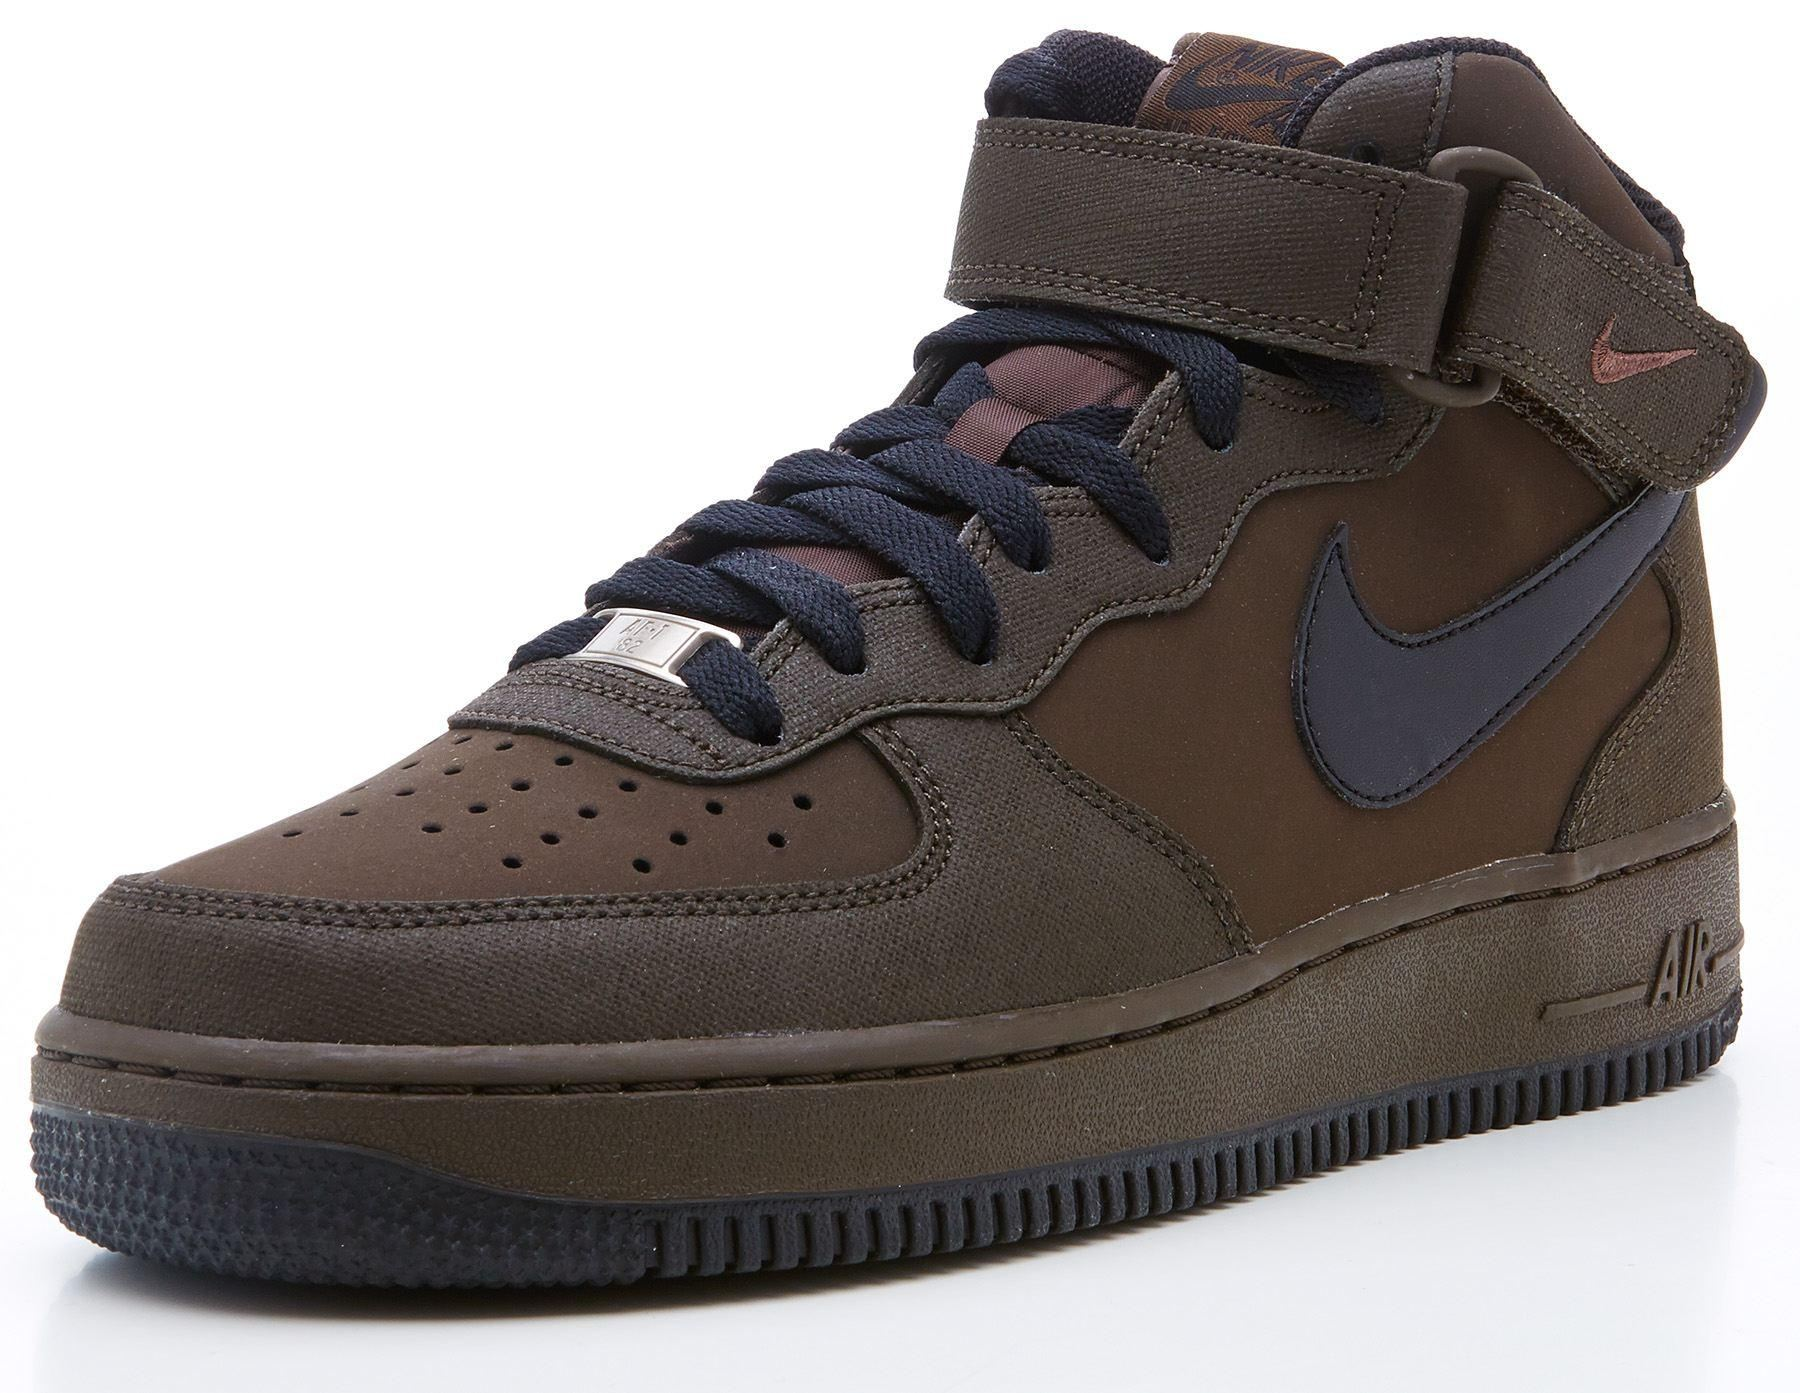 nike air force 1 mid legion brown trainers 315123 202 ebay. Black Bedroom Furniture Sets. Home Design Ideas